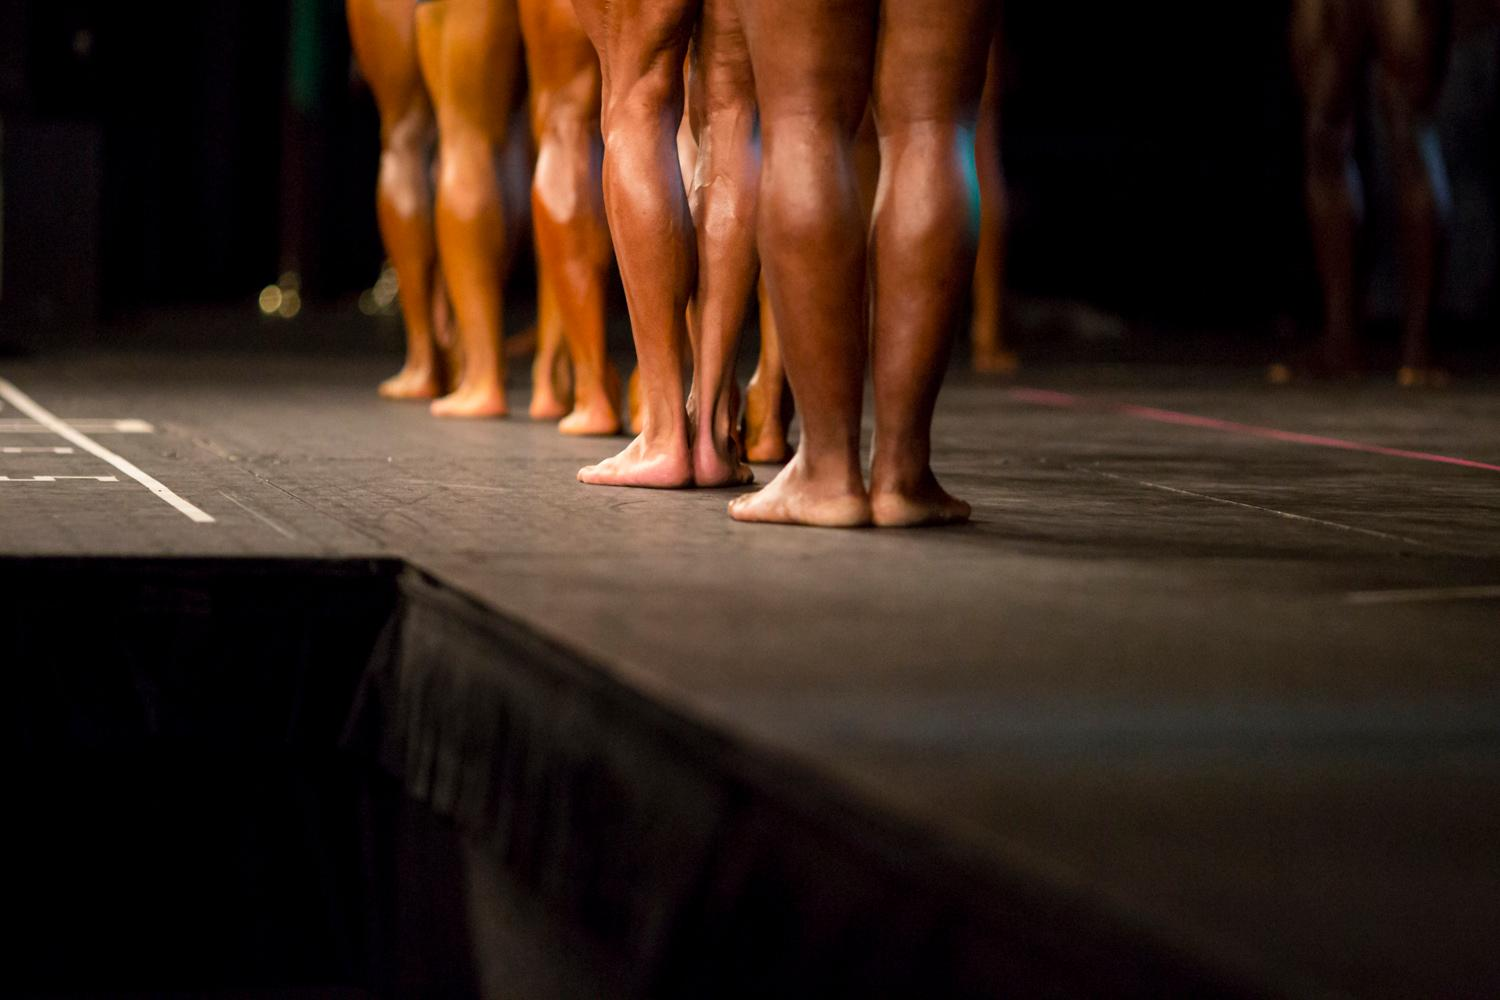 <p>The 2018 NPC Emerald Cup Championships and Fitness Expo is one of the premiere events of its kind in the Northwest. Hundreds of competitors and spectators come to the Meydenbauer Convention Center in Bellevue, WA each year to compete, and watch. (Image: Sy Bean / Seattle Refined)<br></p><p></p>